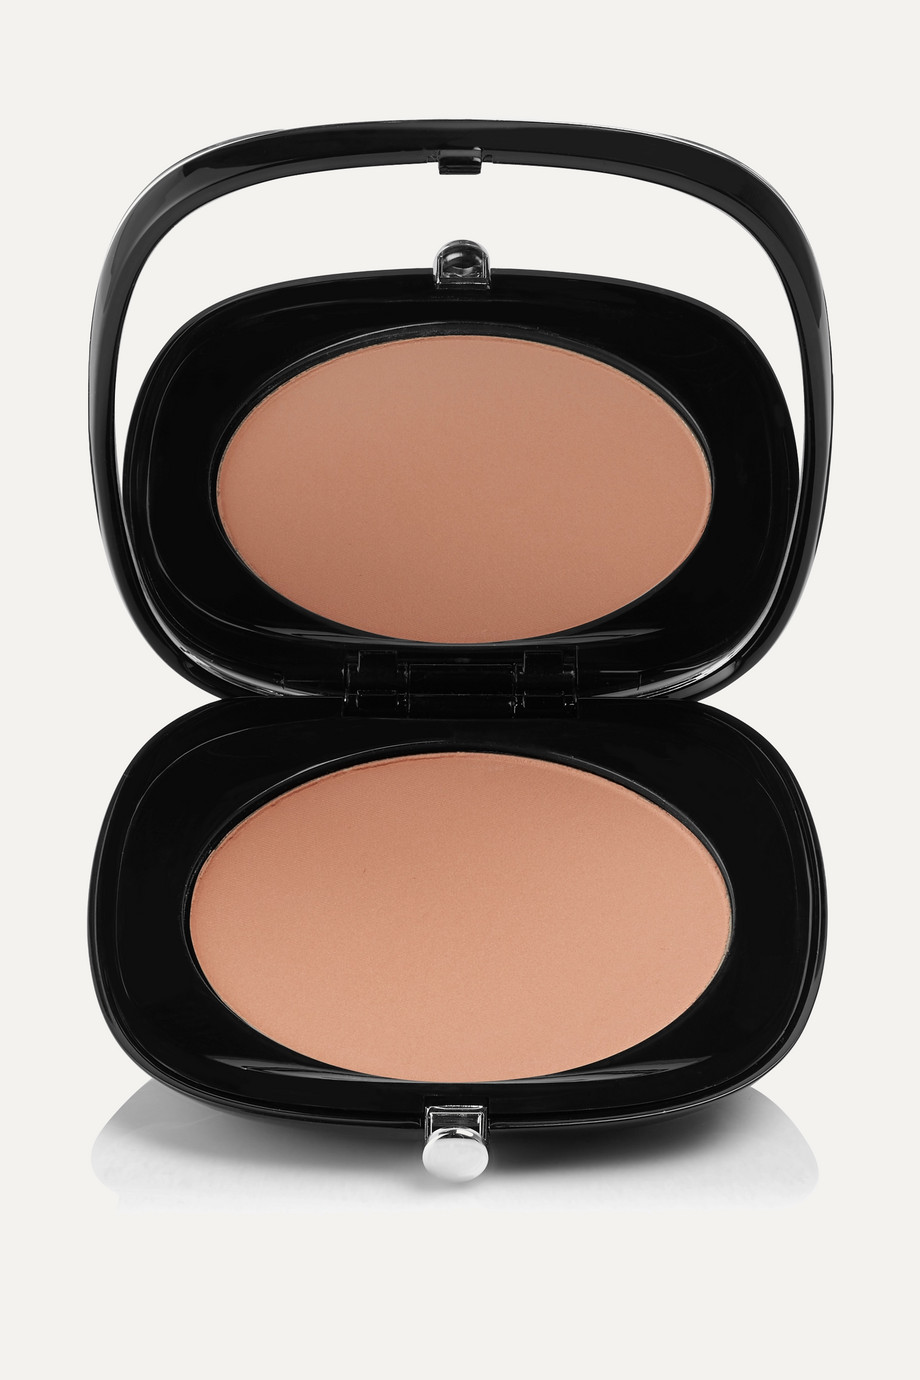 Marc Jacobs Beauty Accomplice Instant Blurring Beauty Powder - Siren